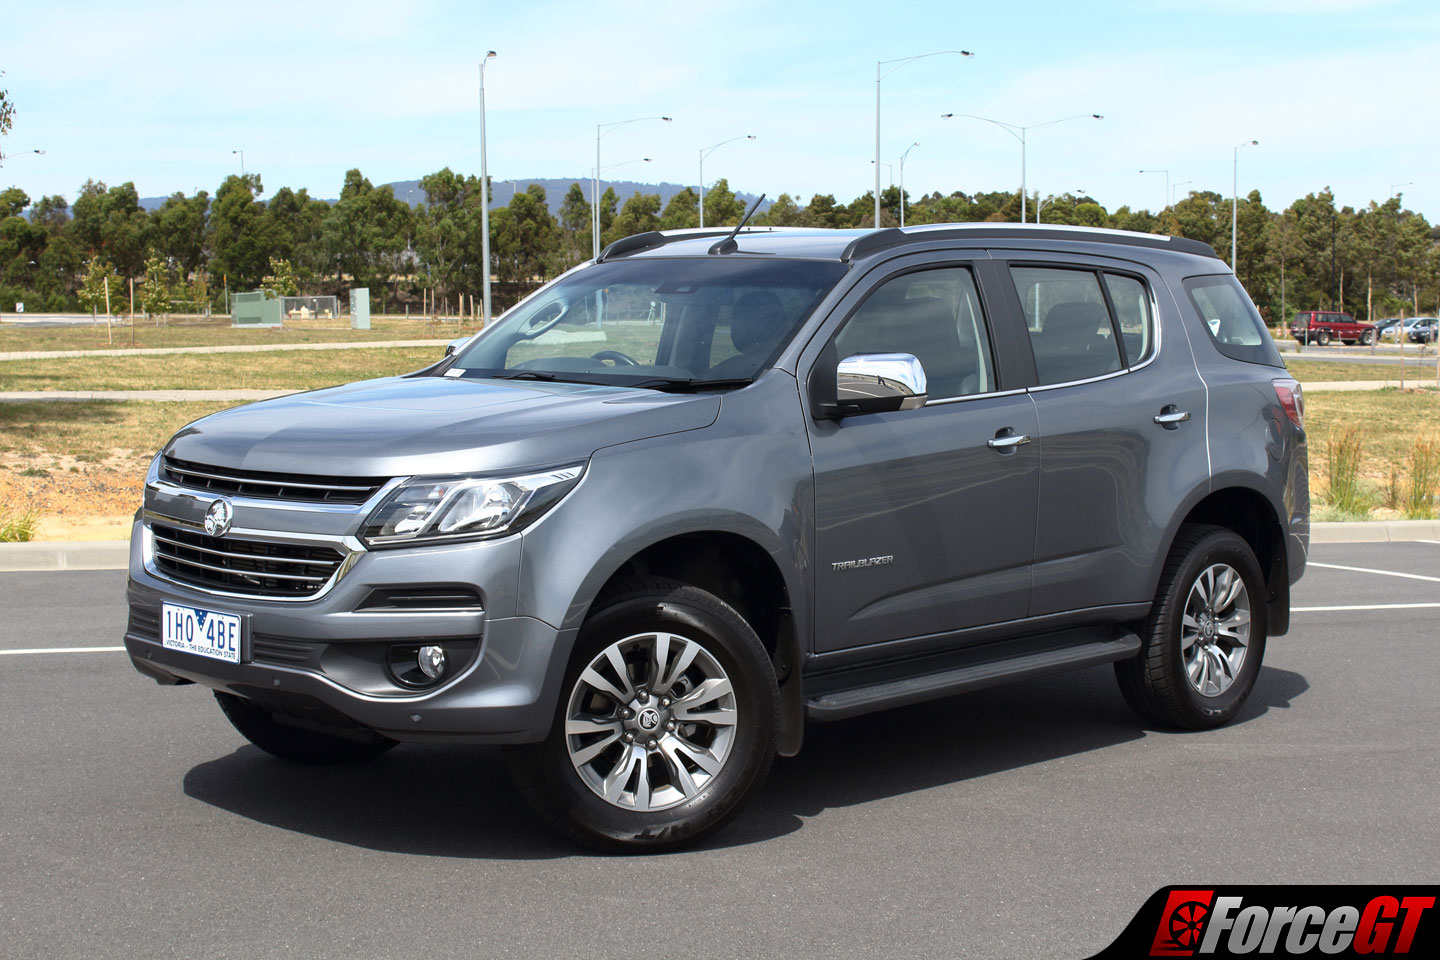 2017 Holden Trailblazer 4x4 LTZ Review